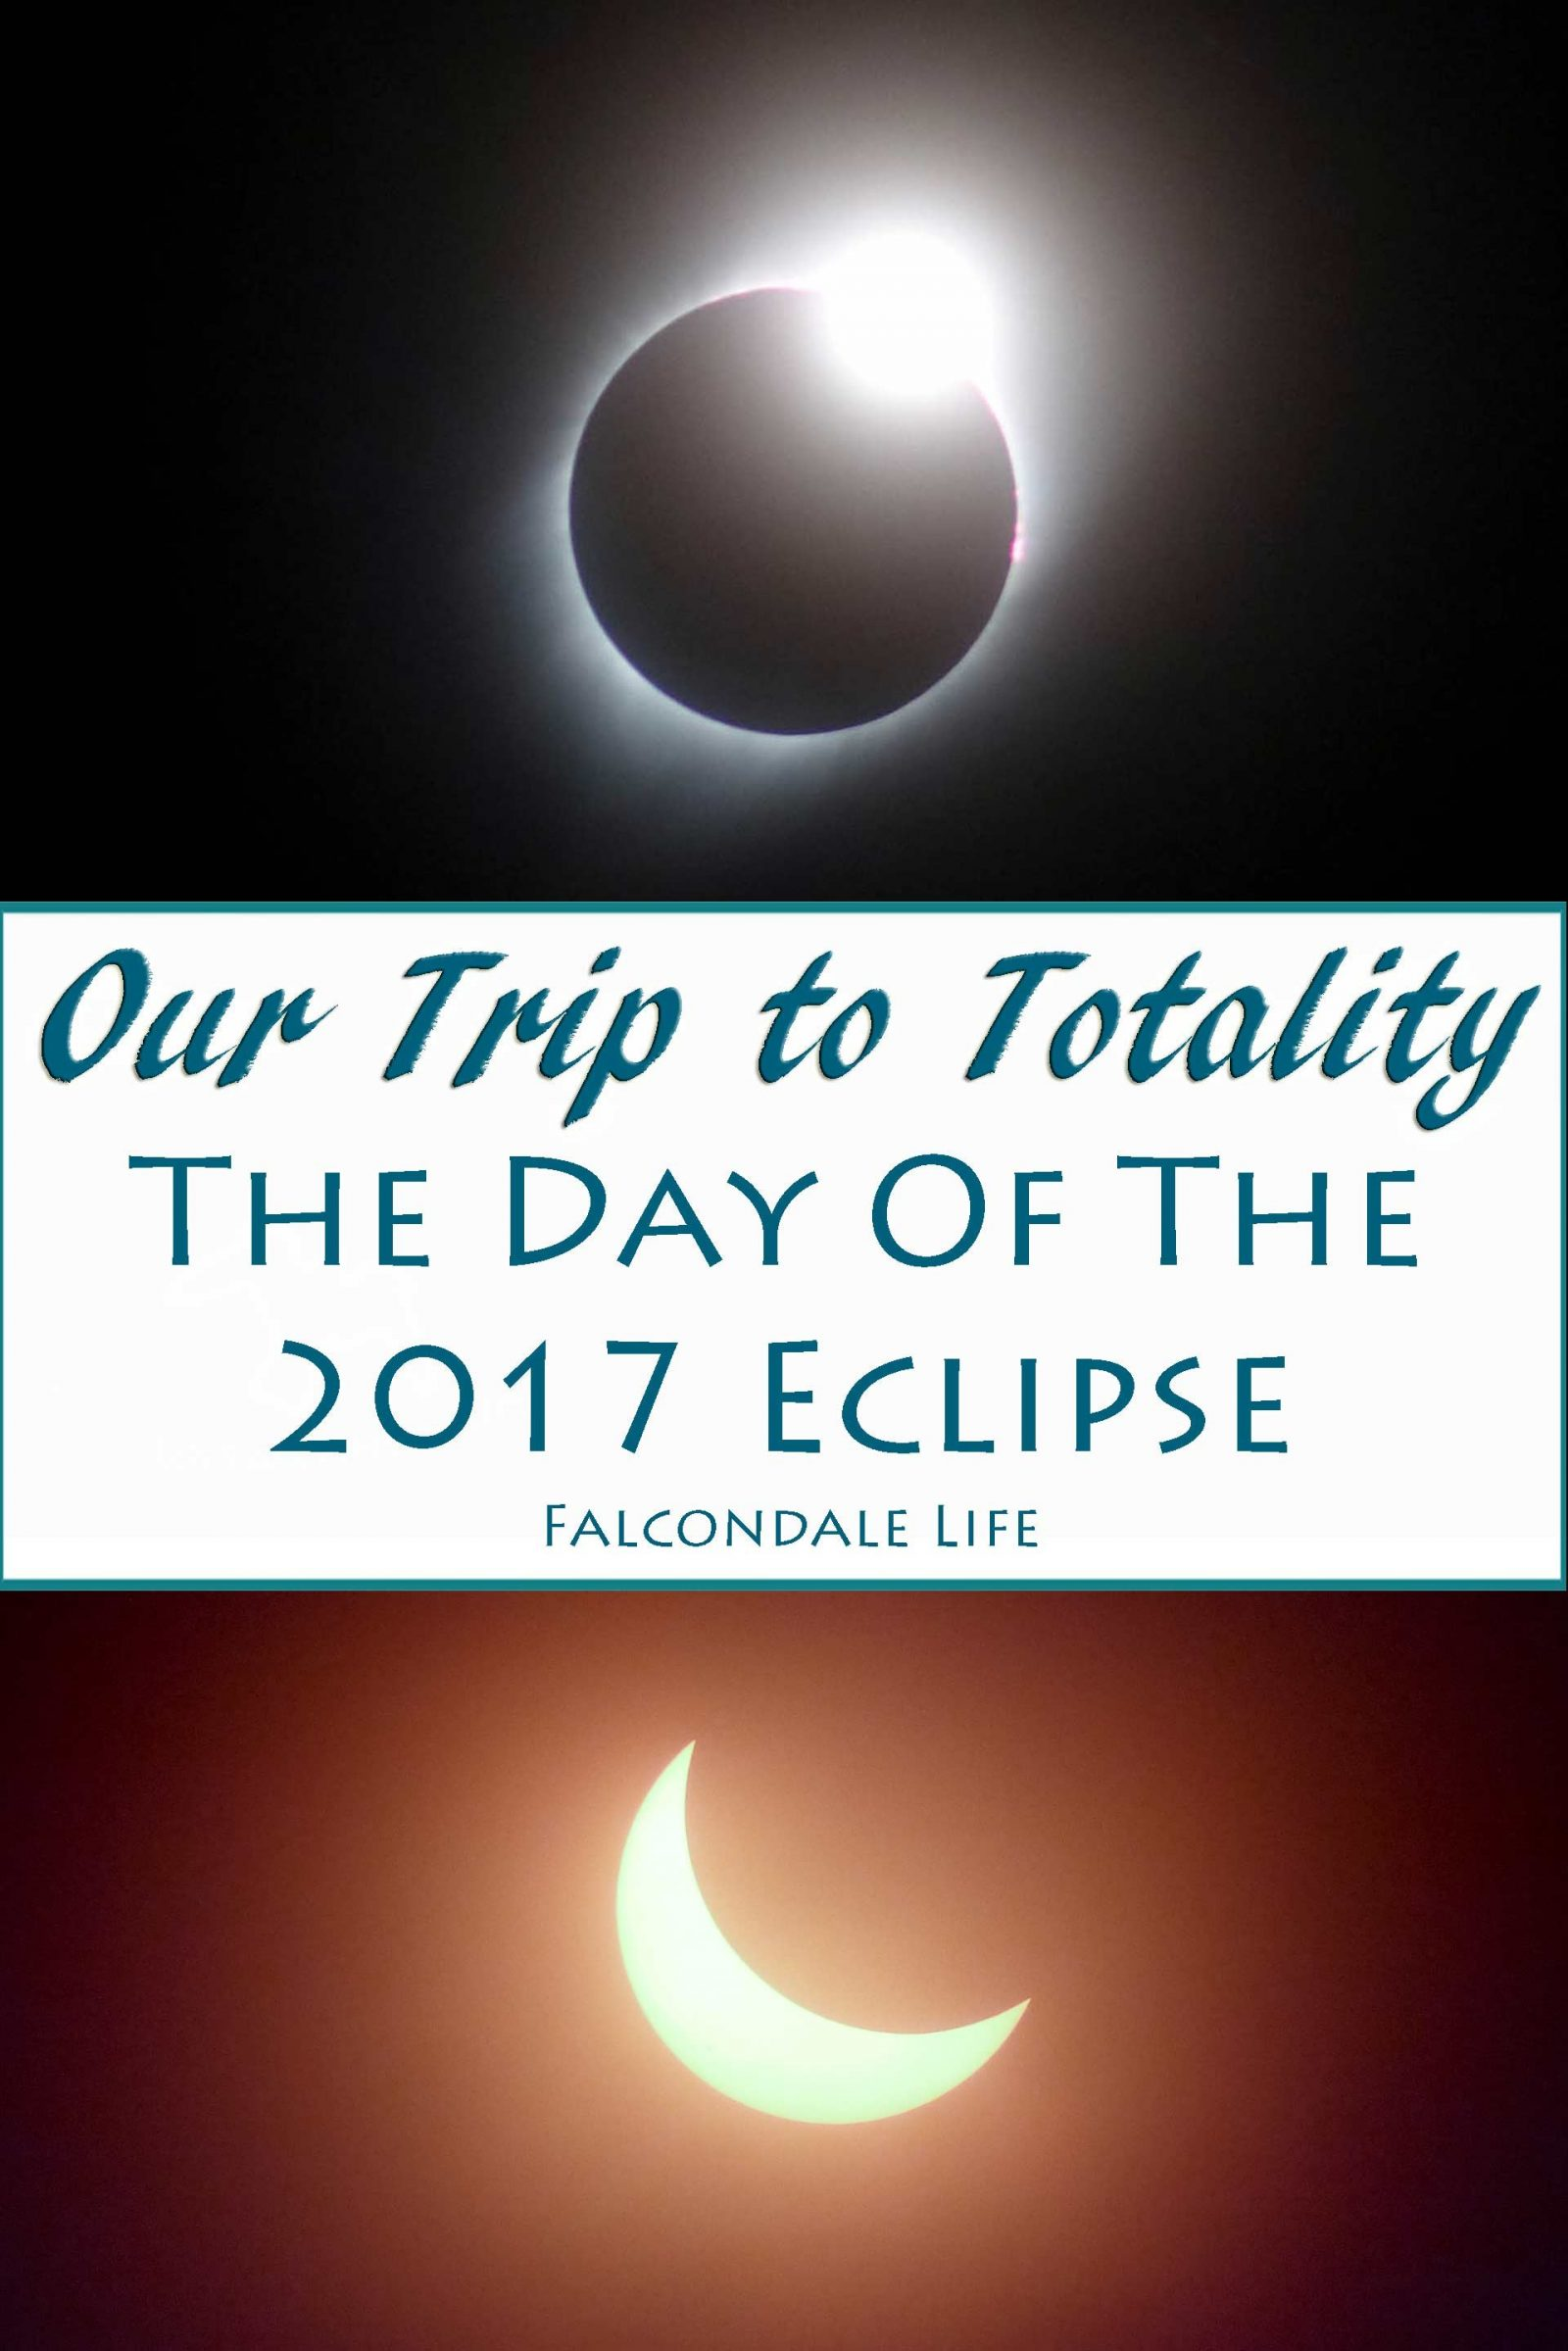 Story and photos of our family trip to see totality of the 2017 solar eclipse, Nebraska USA. How we did vacation planning, eclipse chasing and camera setup. Diamond ring solar eclipse phase.